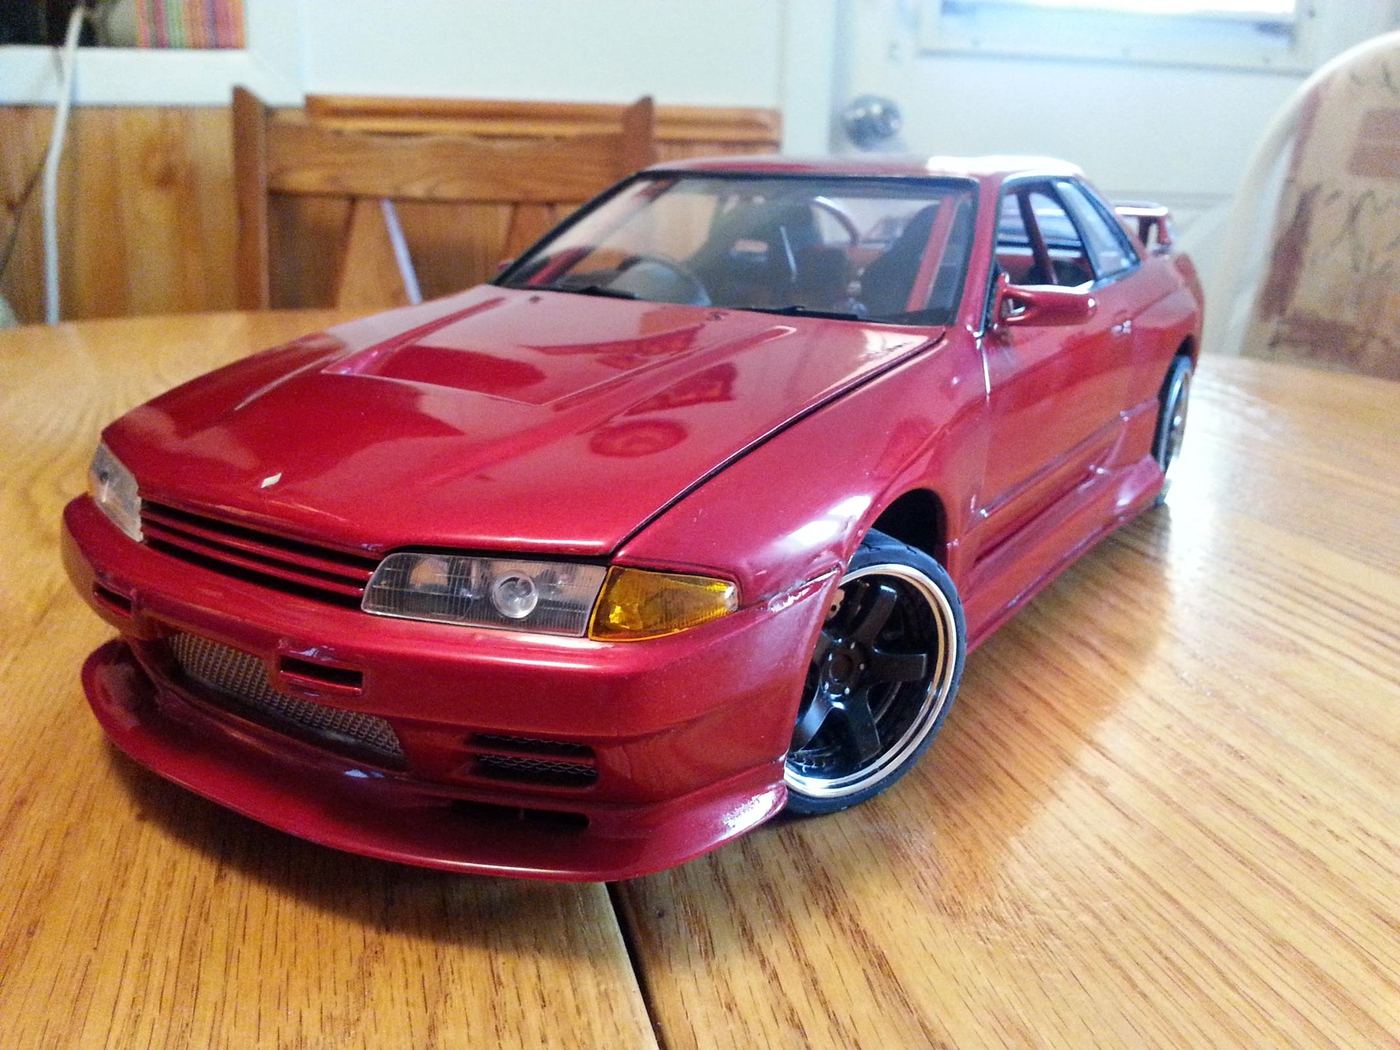 1992 nissan skyline r32 1/12  Photo4-vi